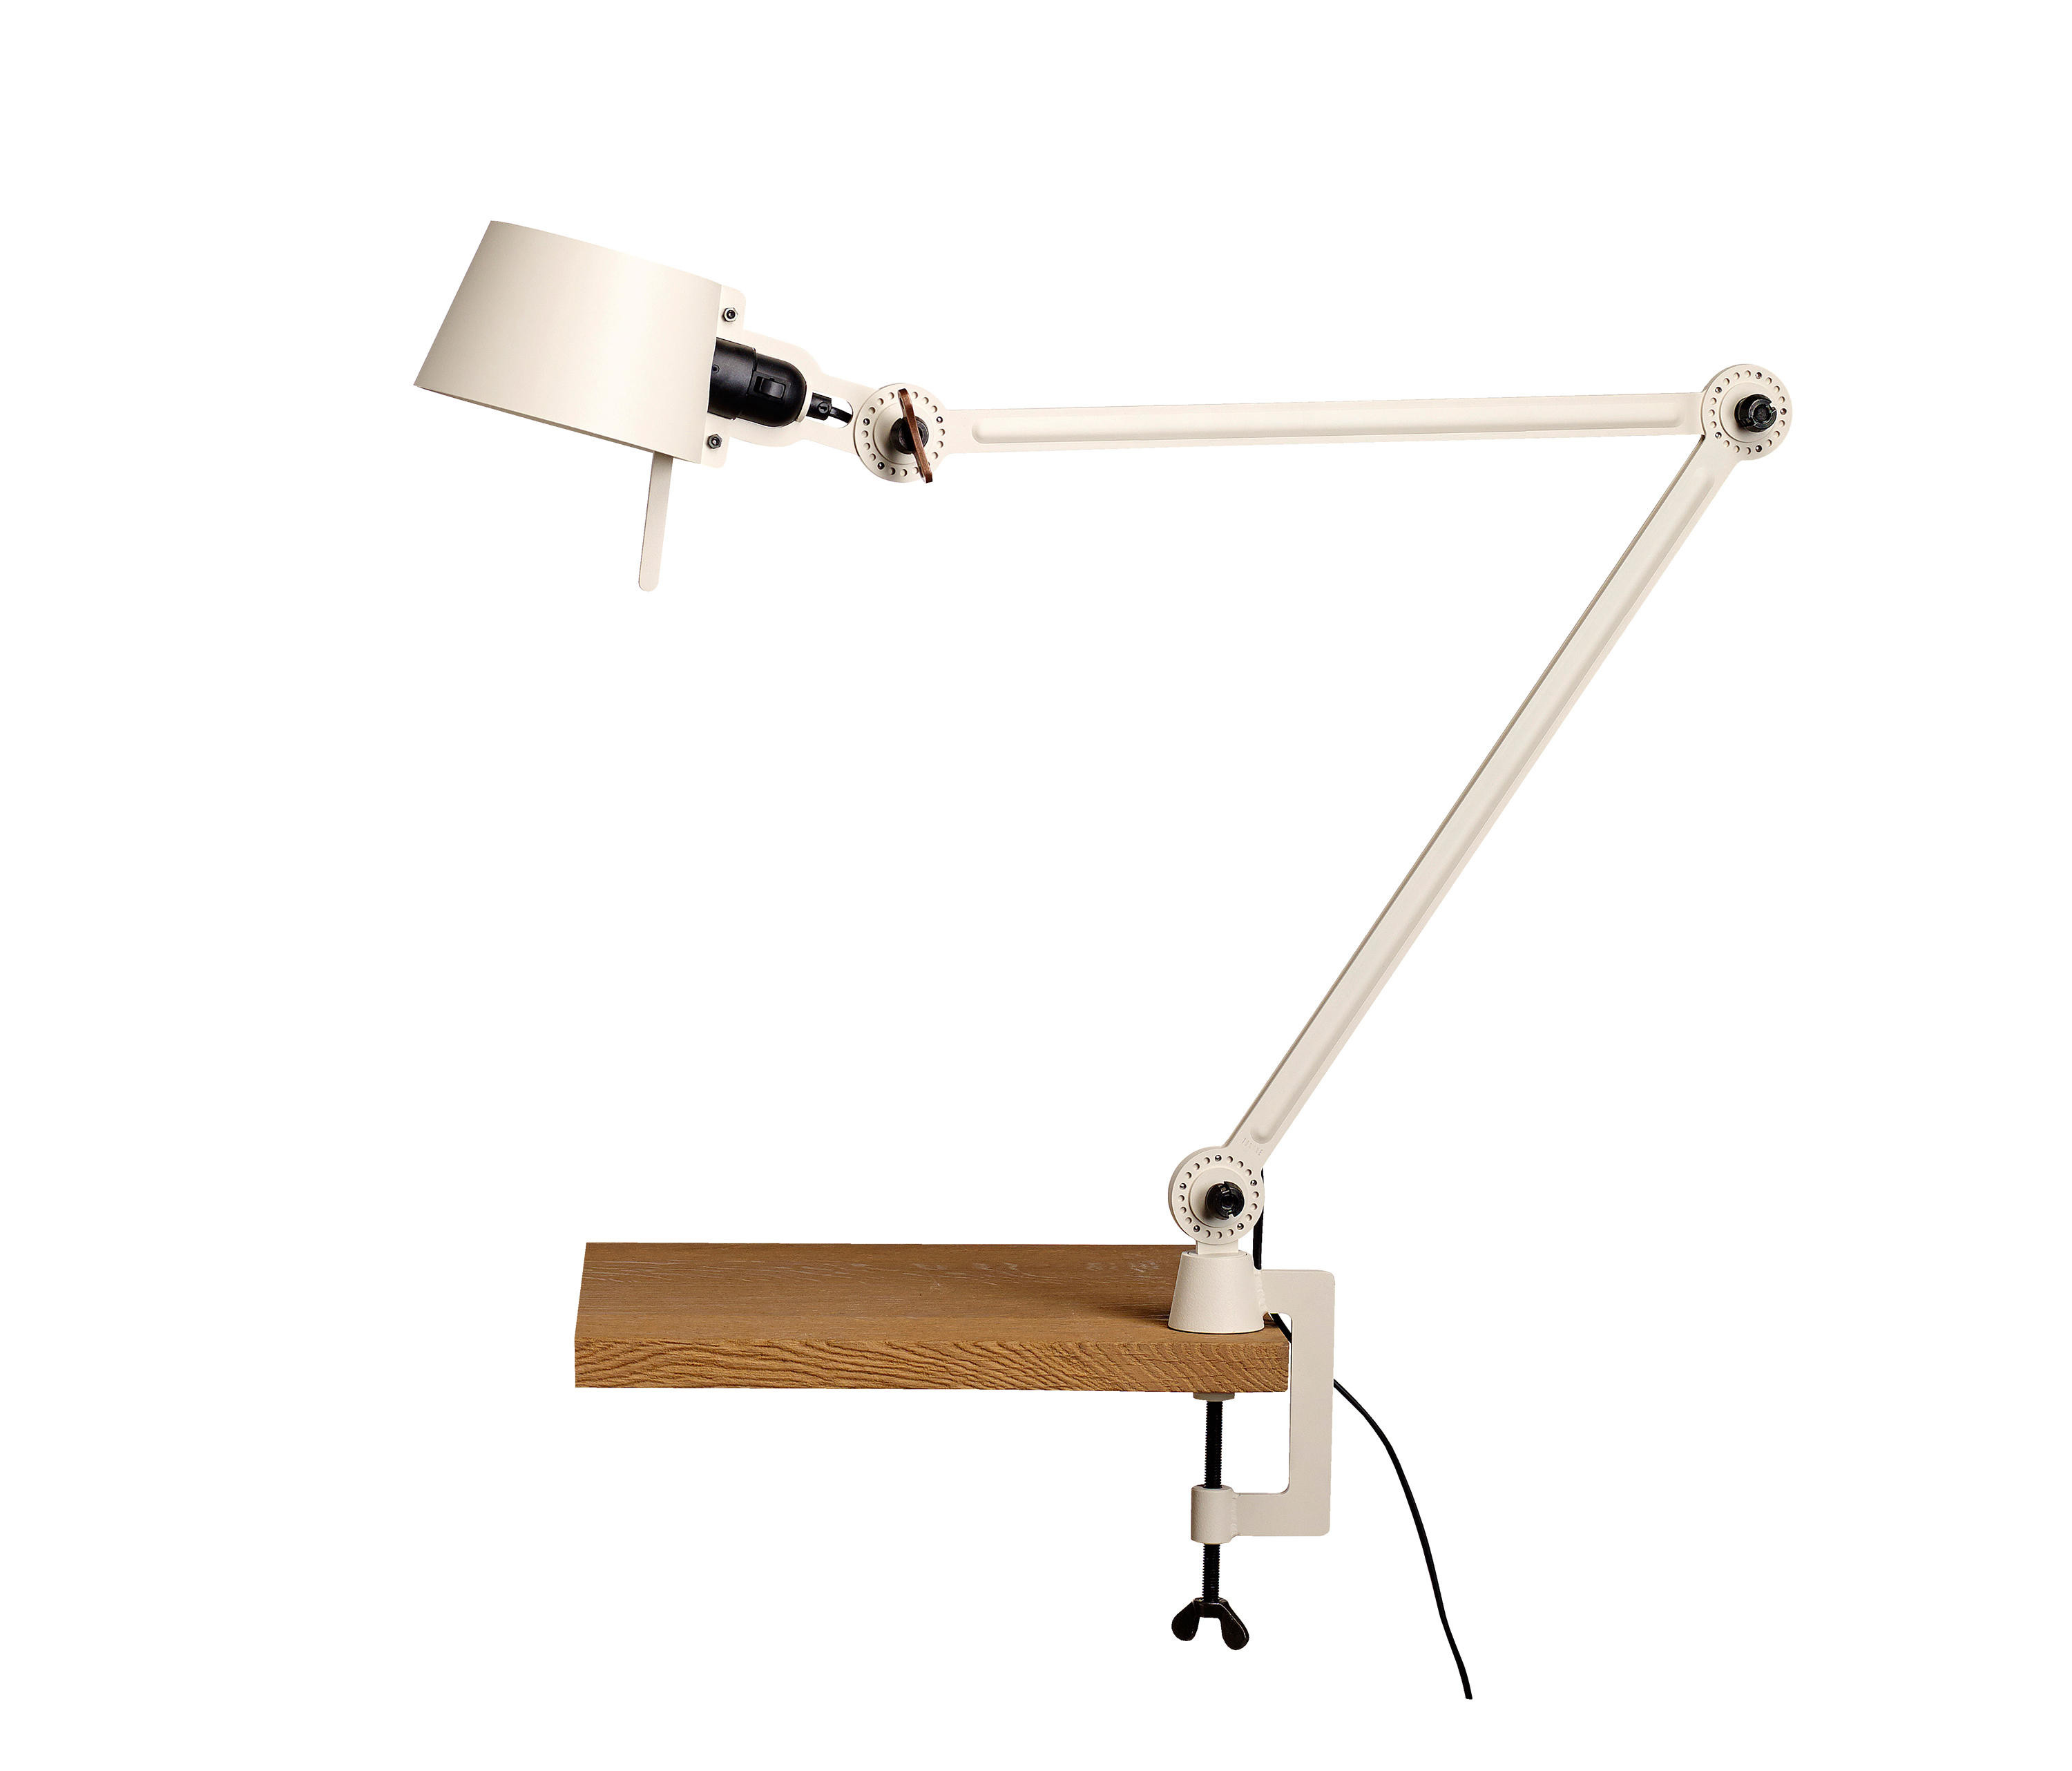 Best ideas about Clamp Desk Lamp . Save or Pin BOLT DESK LAMP Now.